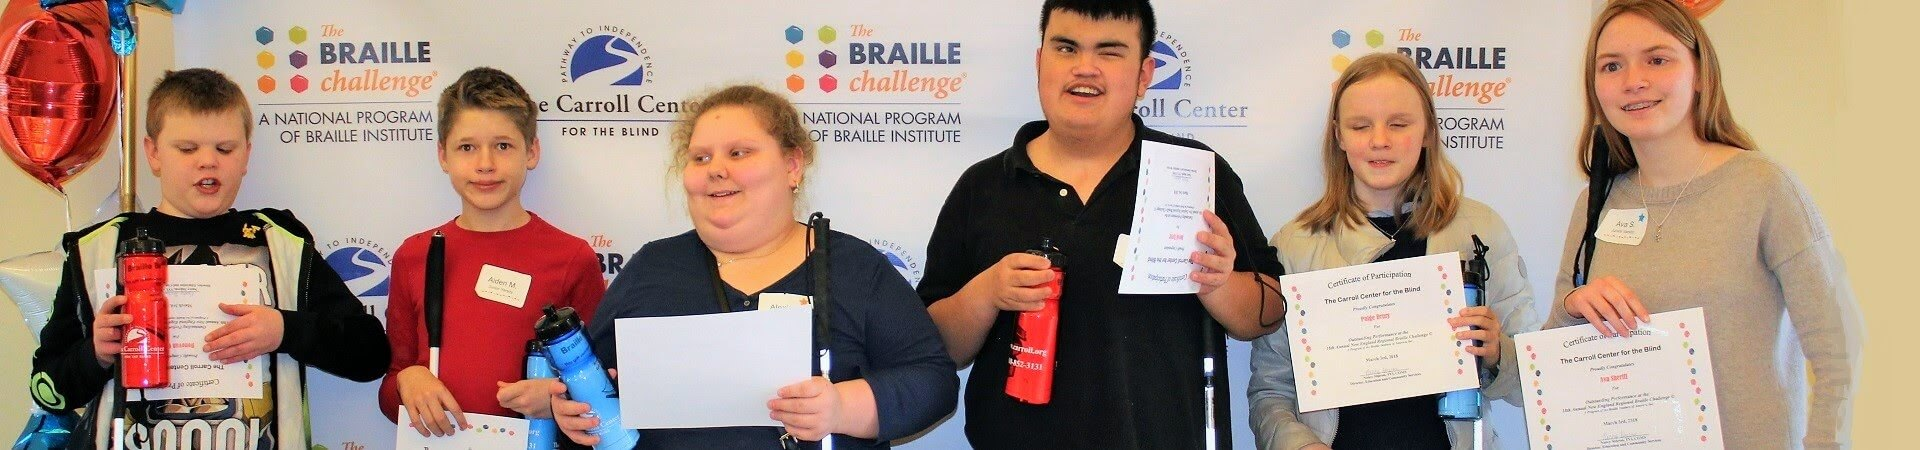 A group of 6 young visually impaired teens stand together holding completion certificates at the New England Regional Braille Challenge.